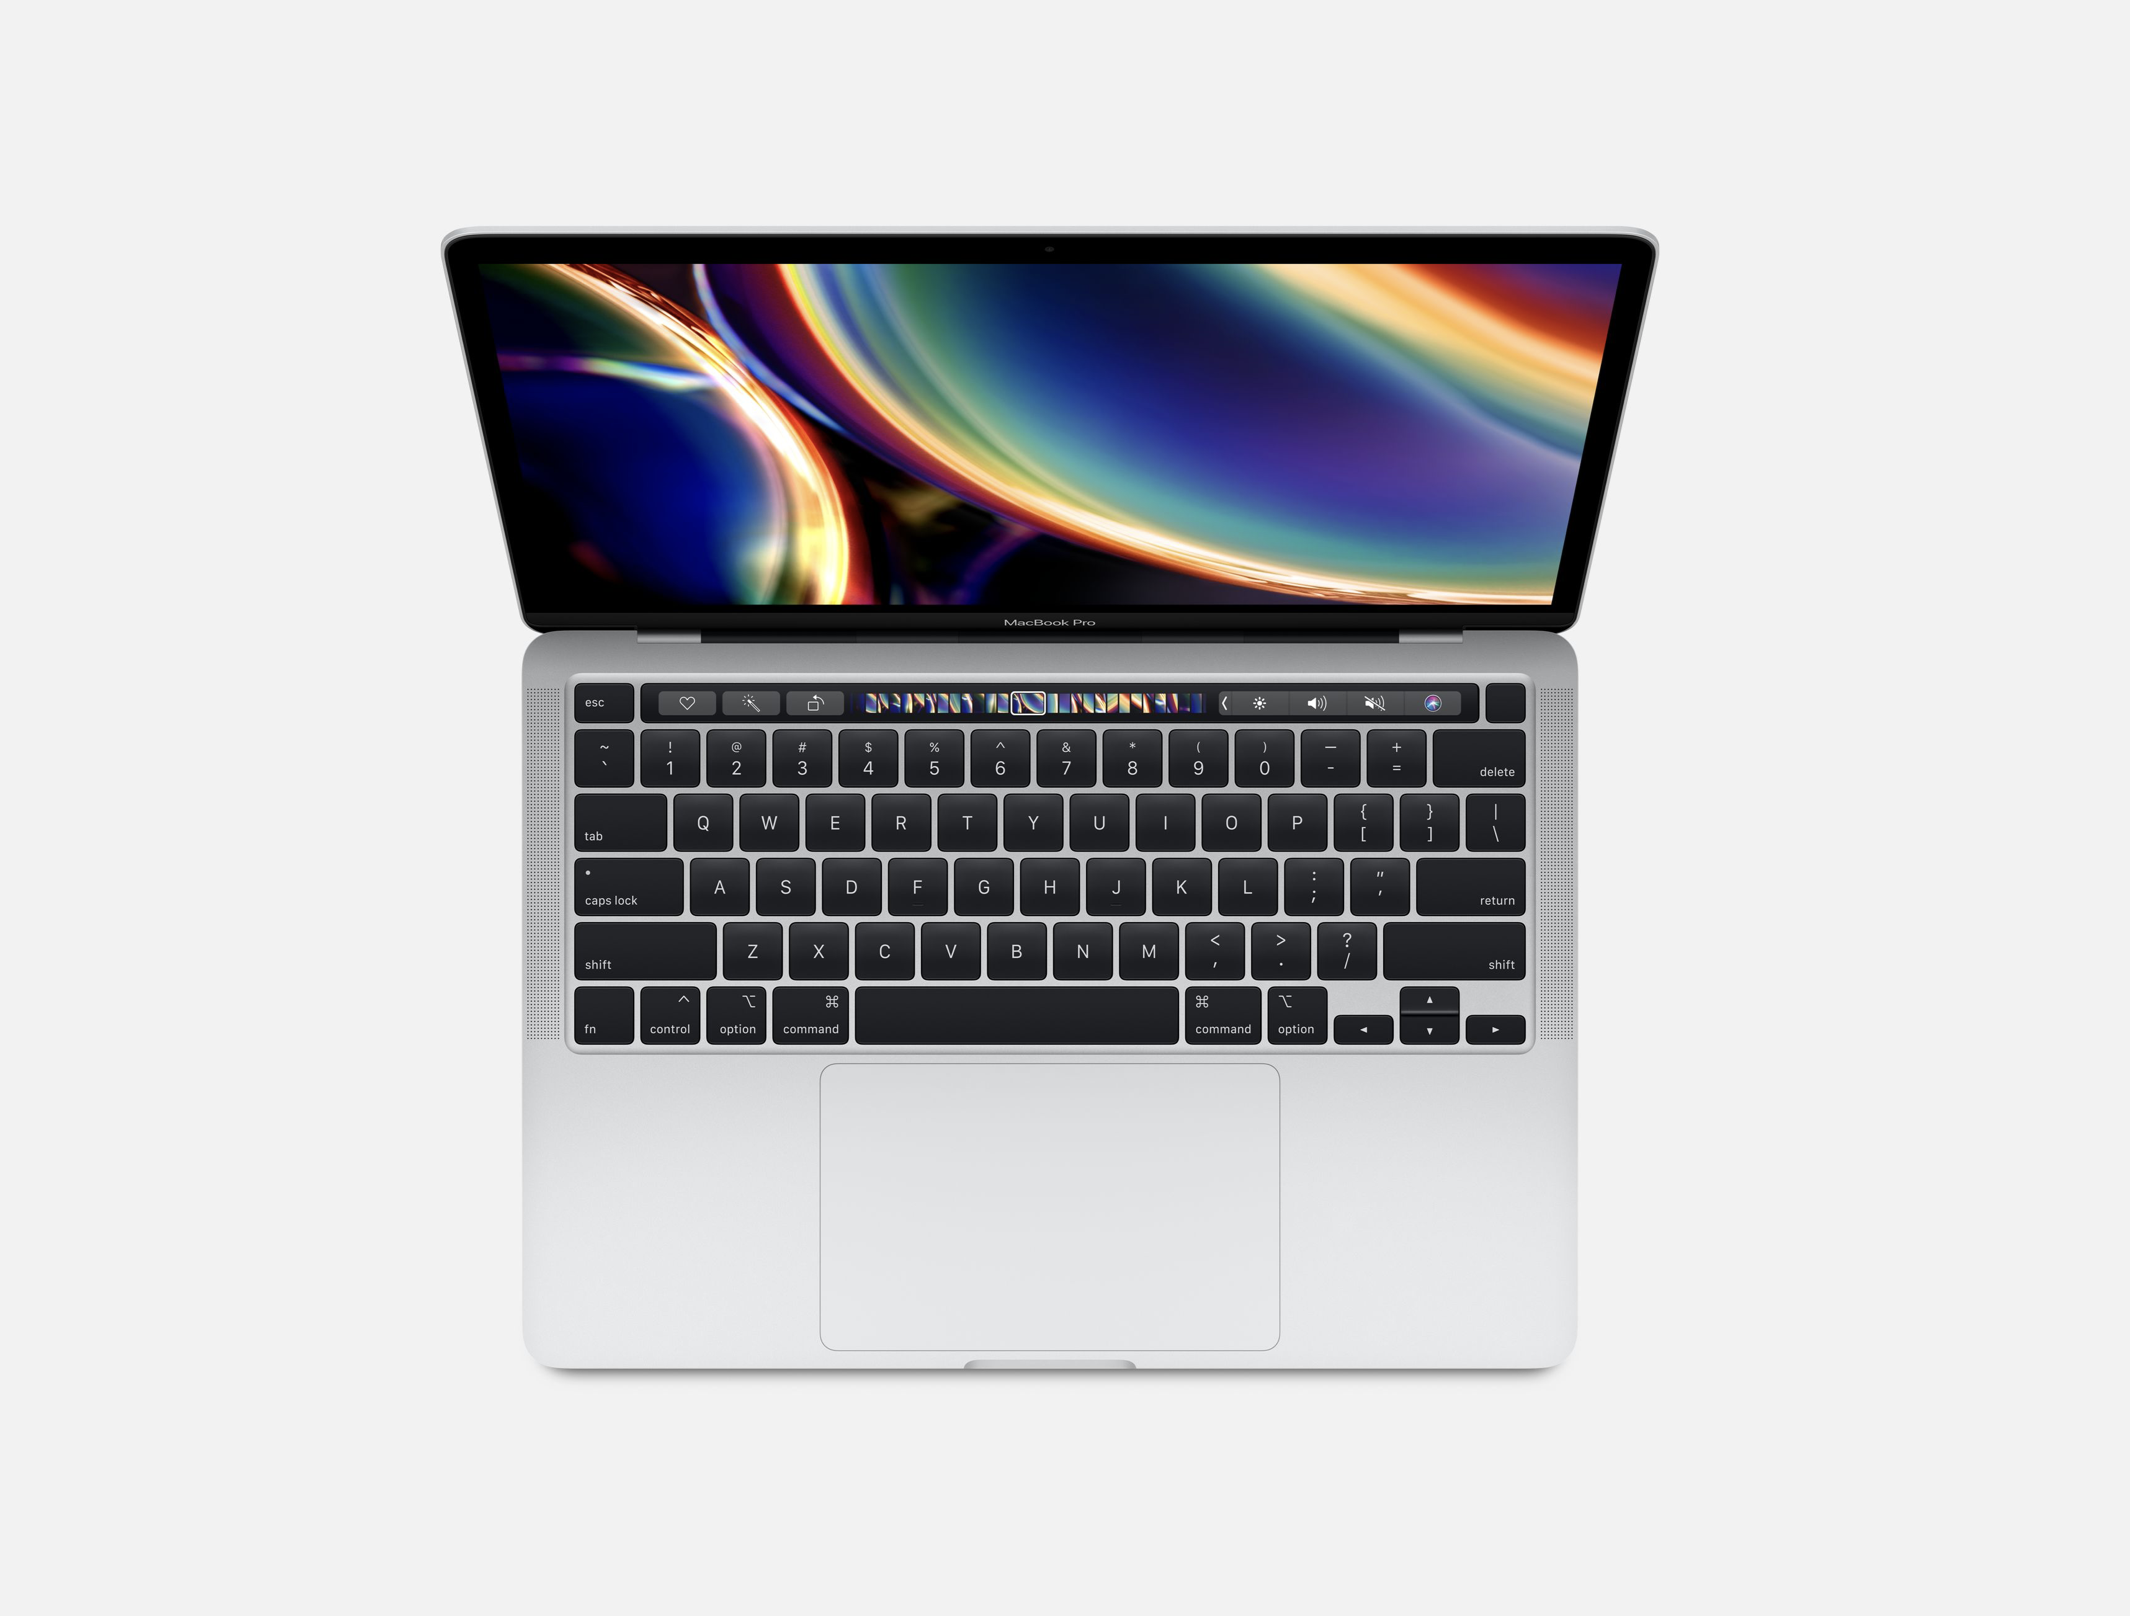 Graduation Bundle MacBook Pro 2.0GHz (Silver) 1TB with AppleCare+ and FREE HD at Small Dog Electronics